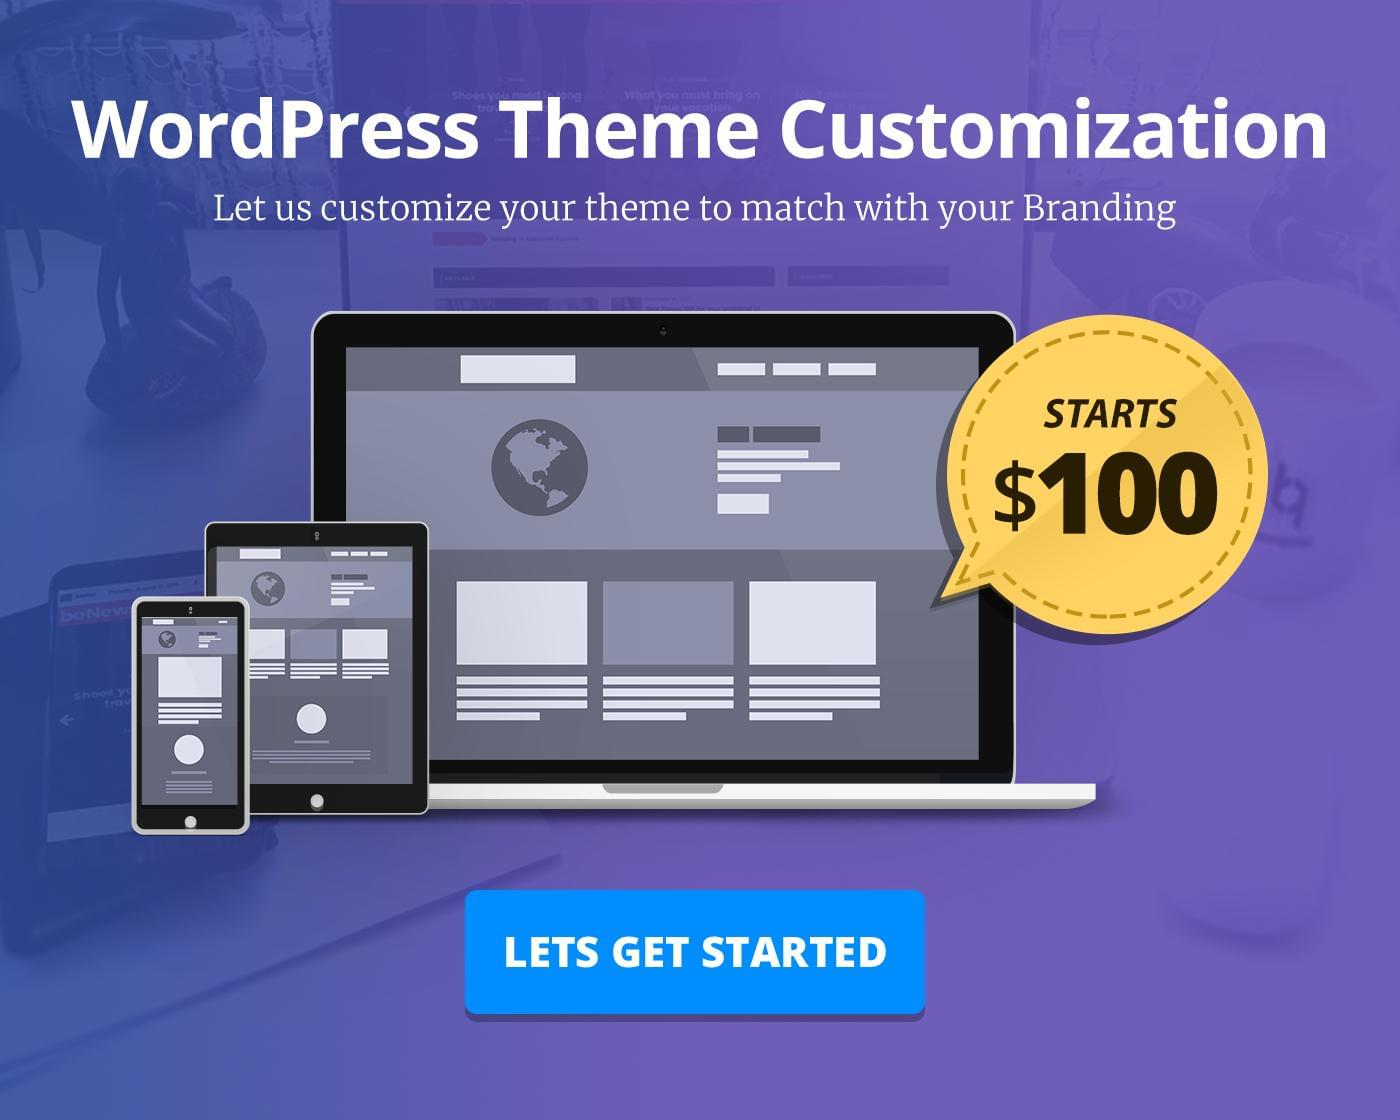 WordPress Theme Customization by BloomPixel - 111874